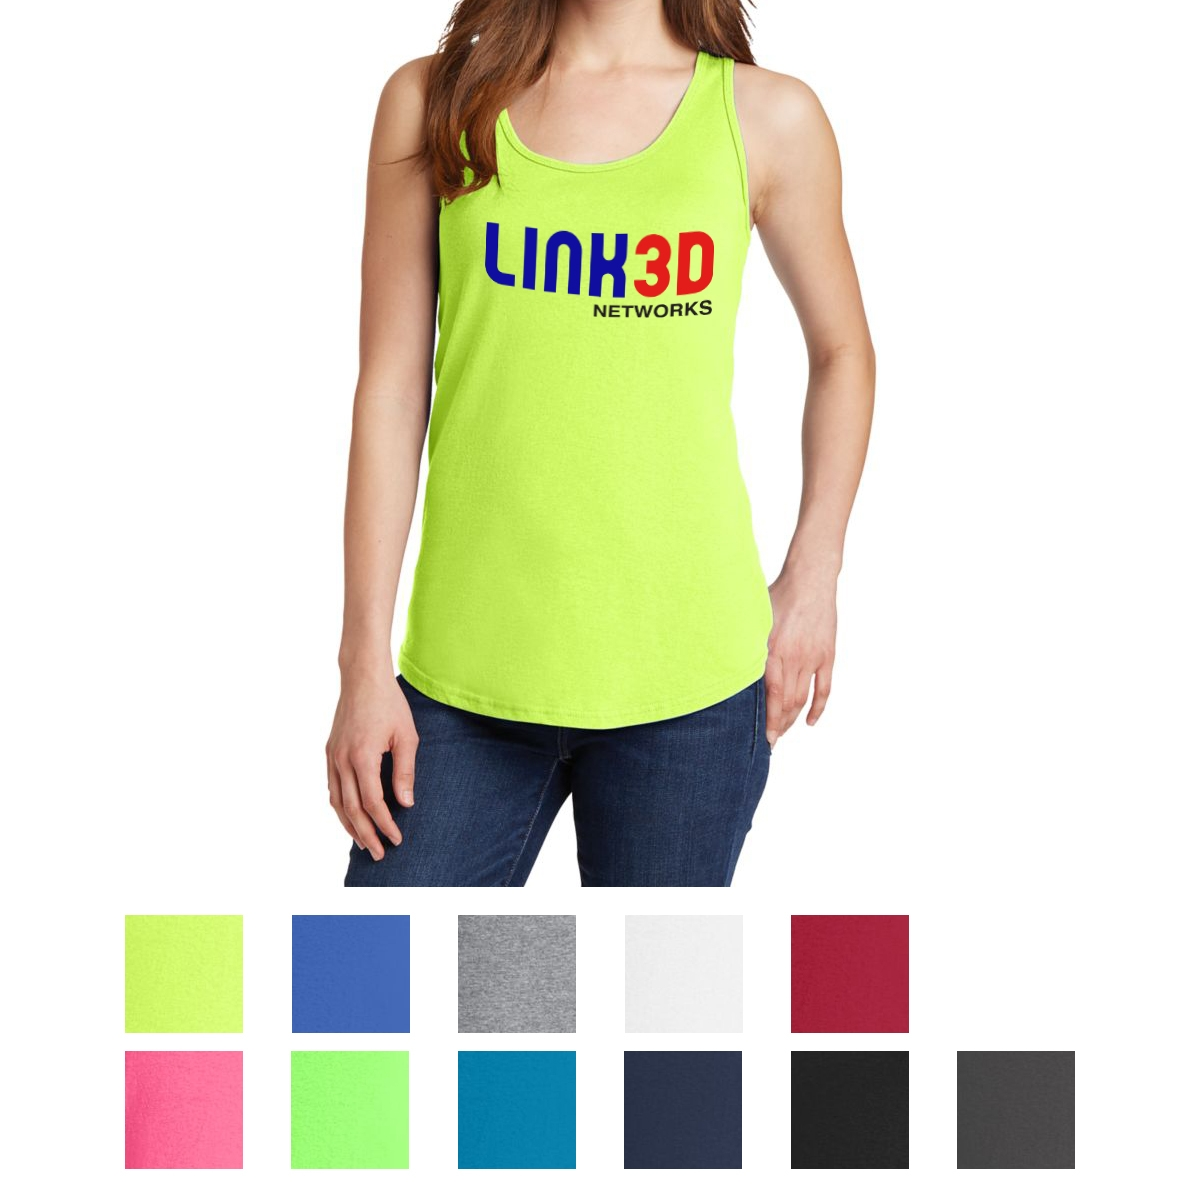 782df88e1ab0f  CM LPC54TT PORT   COMPANY® LADIES CORE COTTON TANK TOP